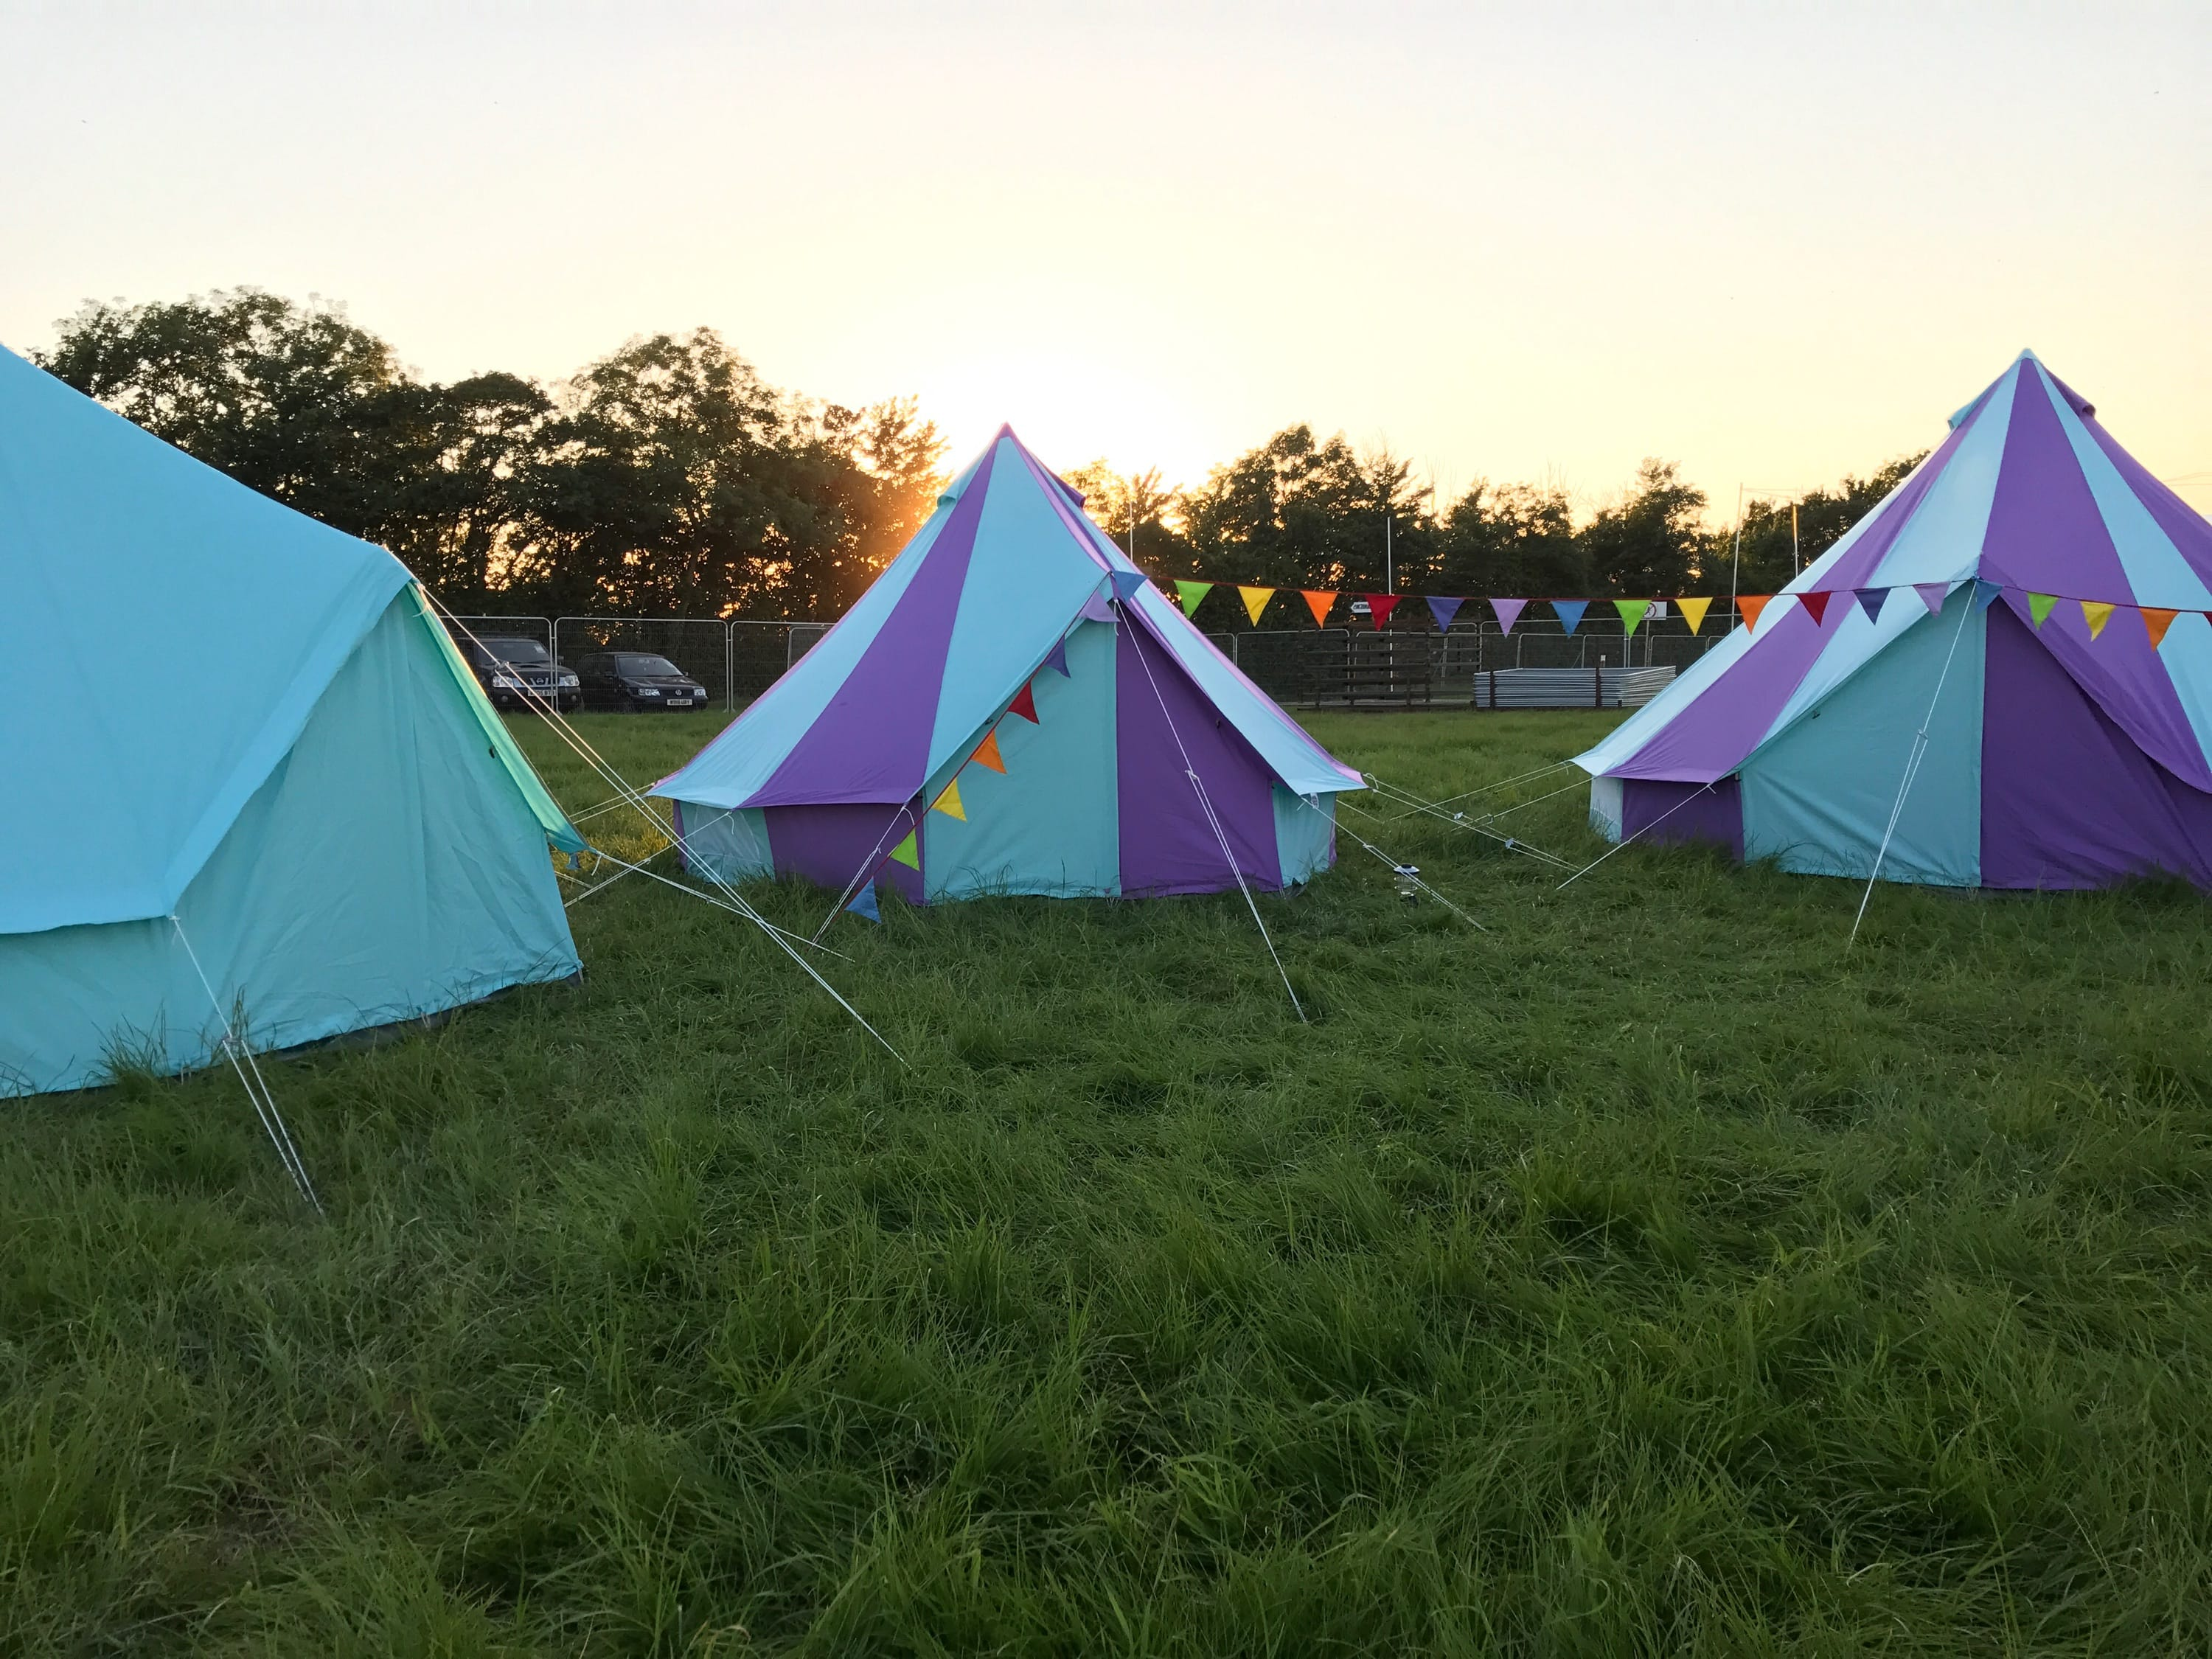 Sky Blue and Harlequin Bell Tents